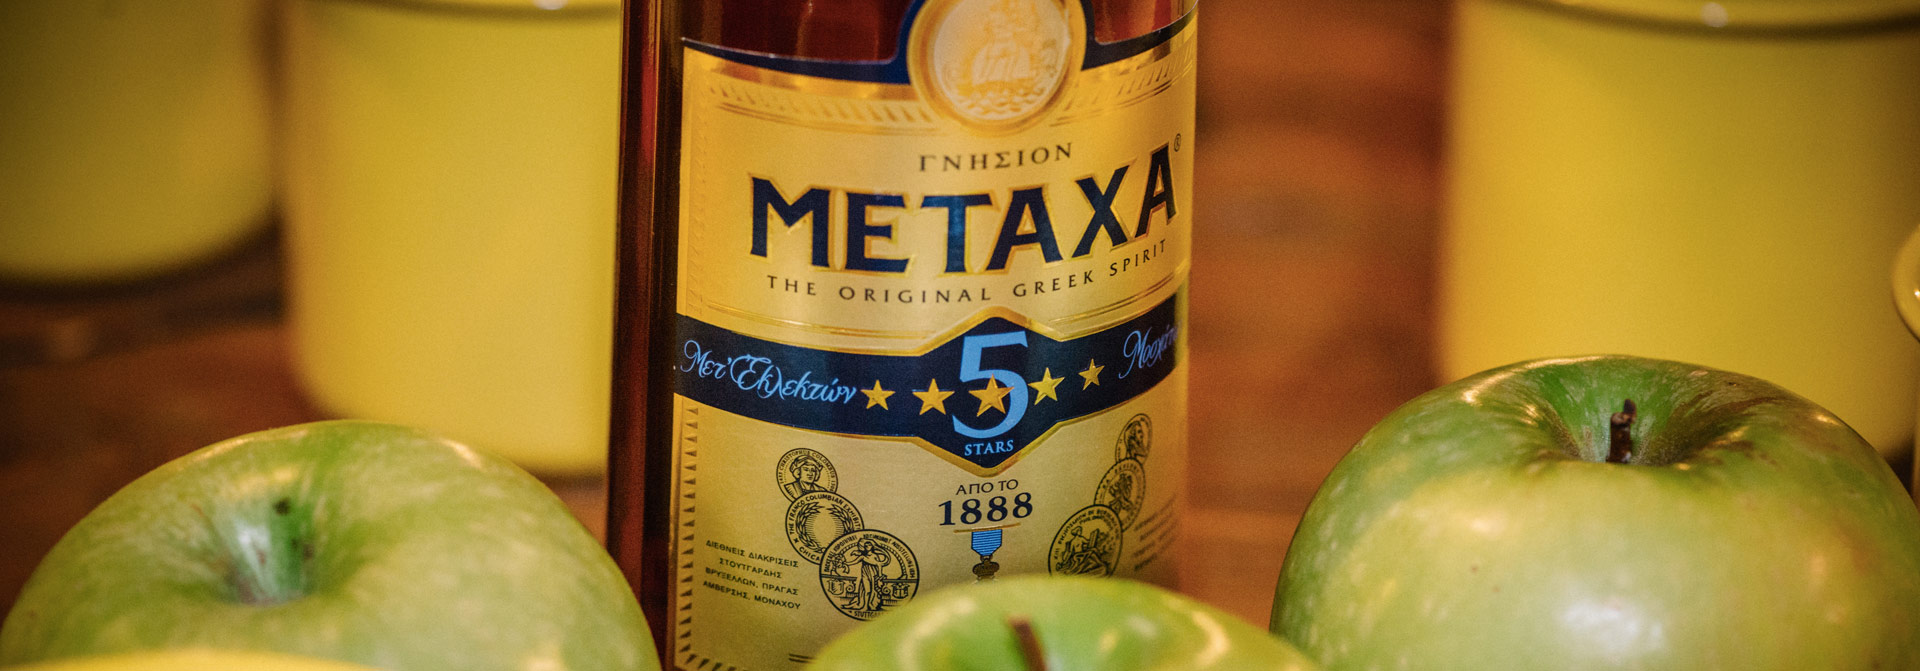 metaxa hot sun christmas cocktail